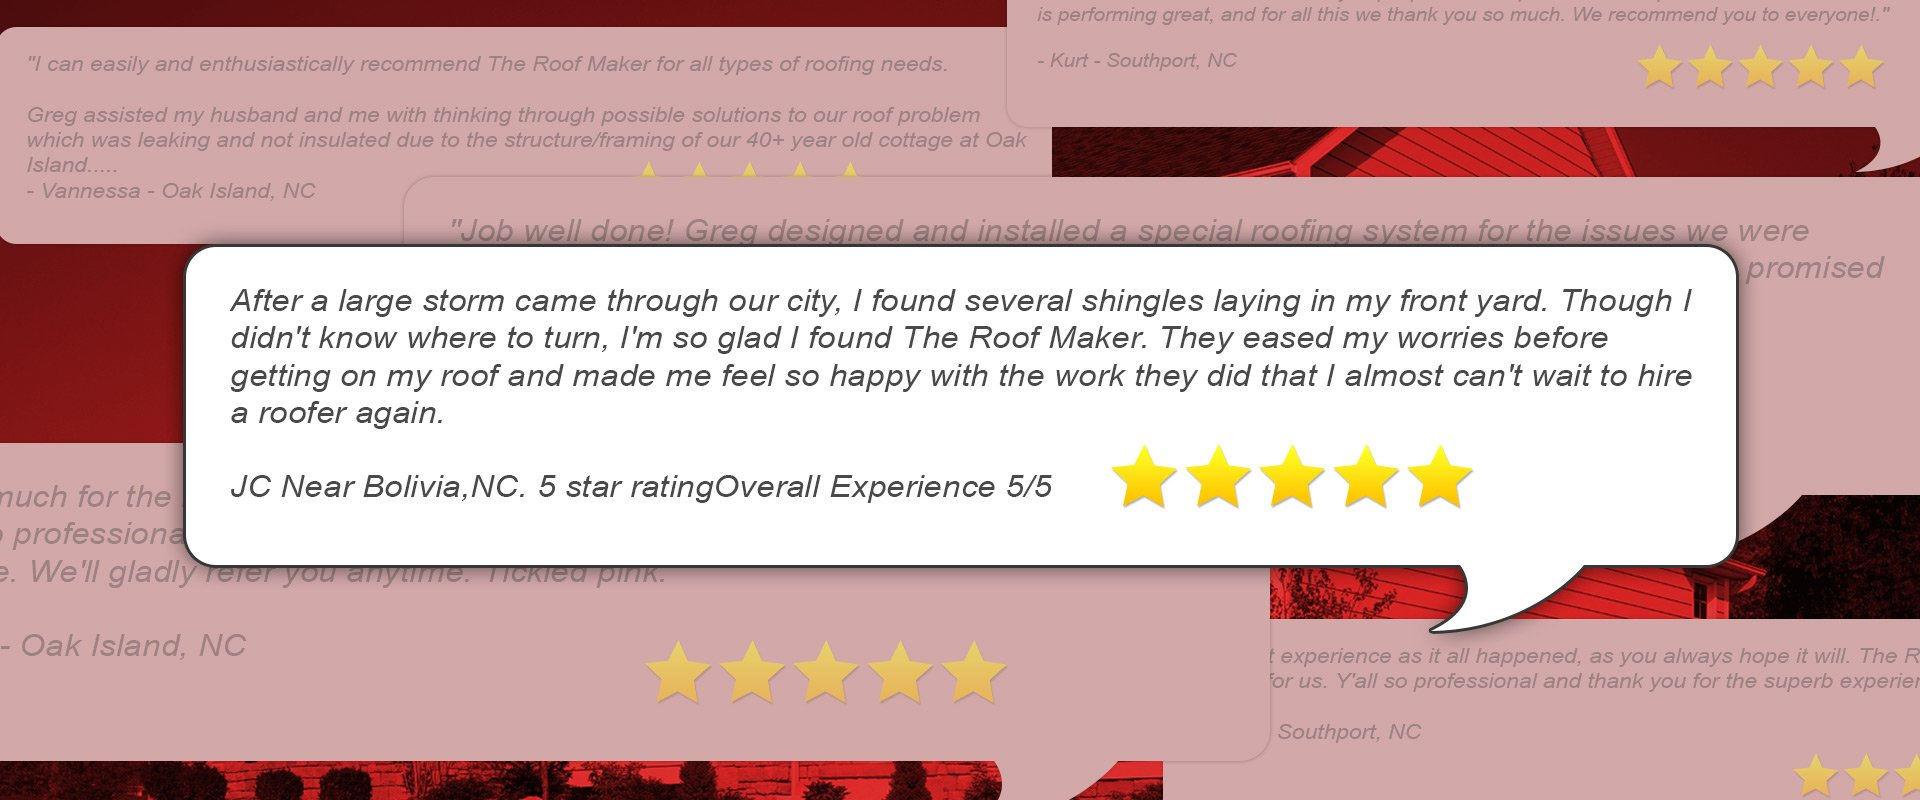 Roofing company testimonials